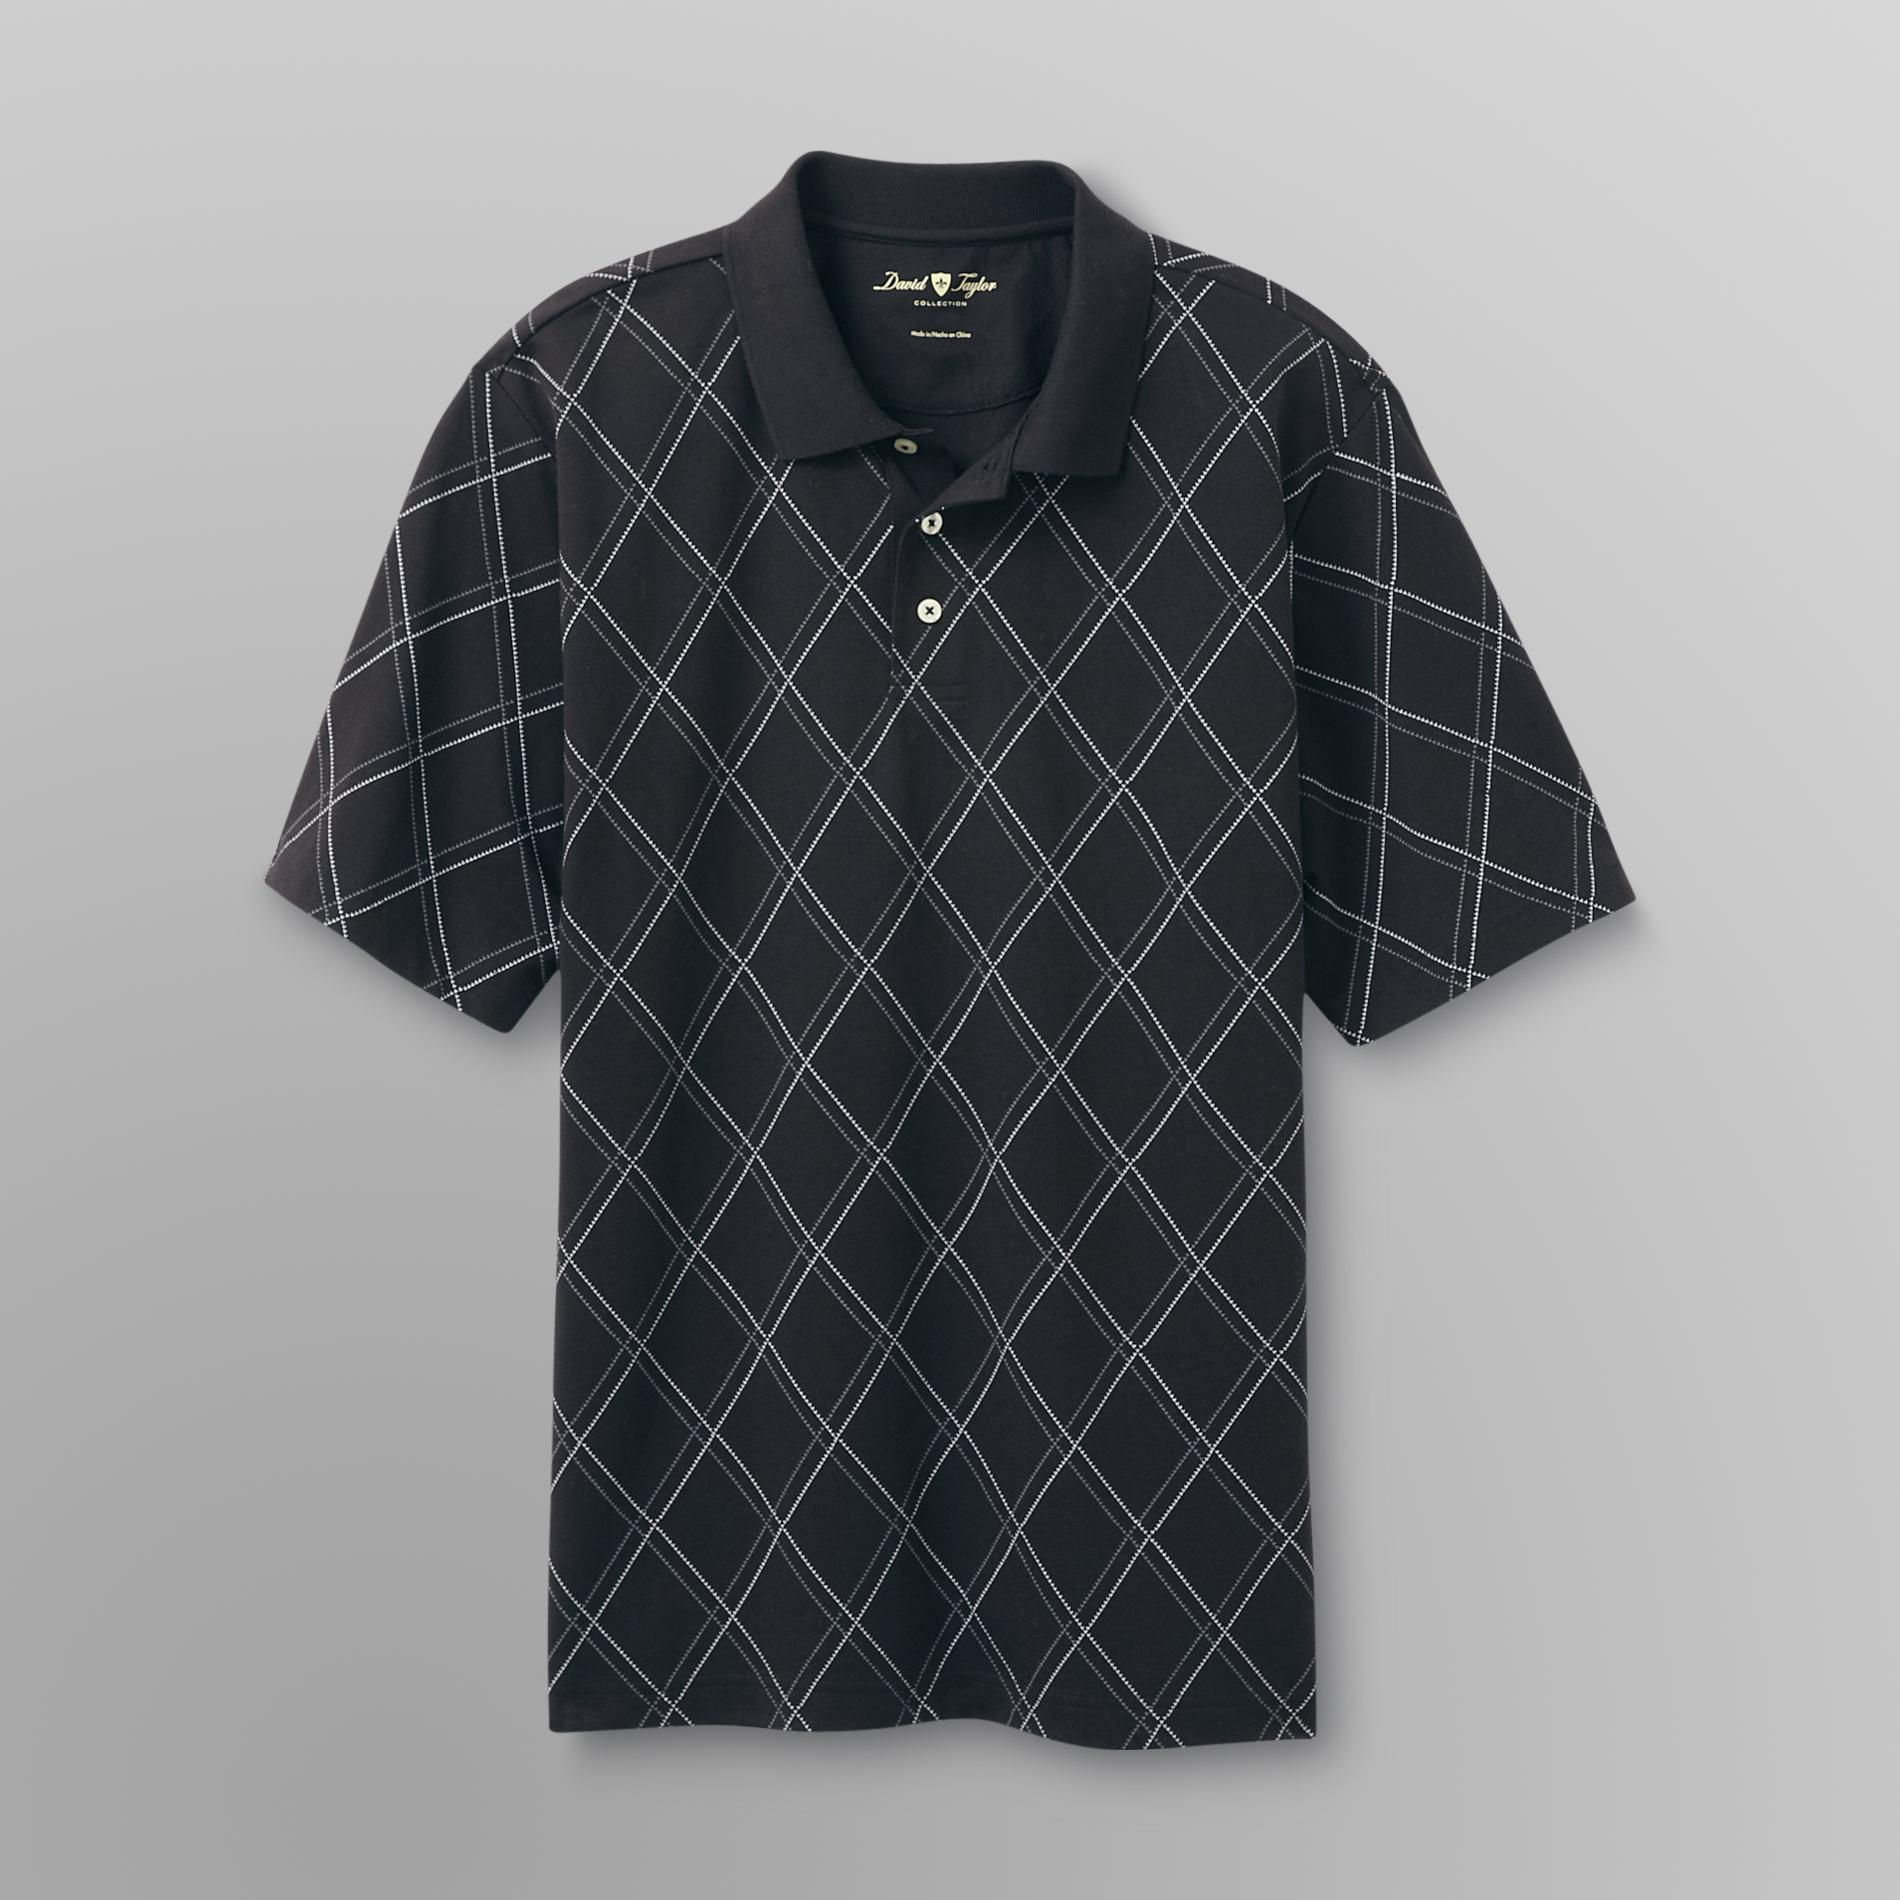 David Taylor Men's Big & Tall Polo Shirt - Plaid at Kmart.com